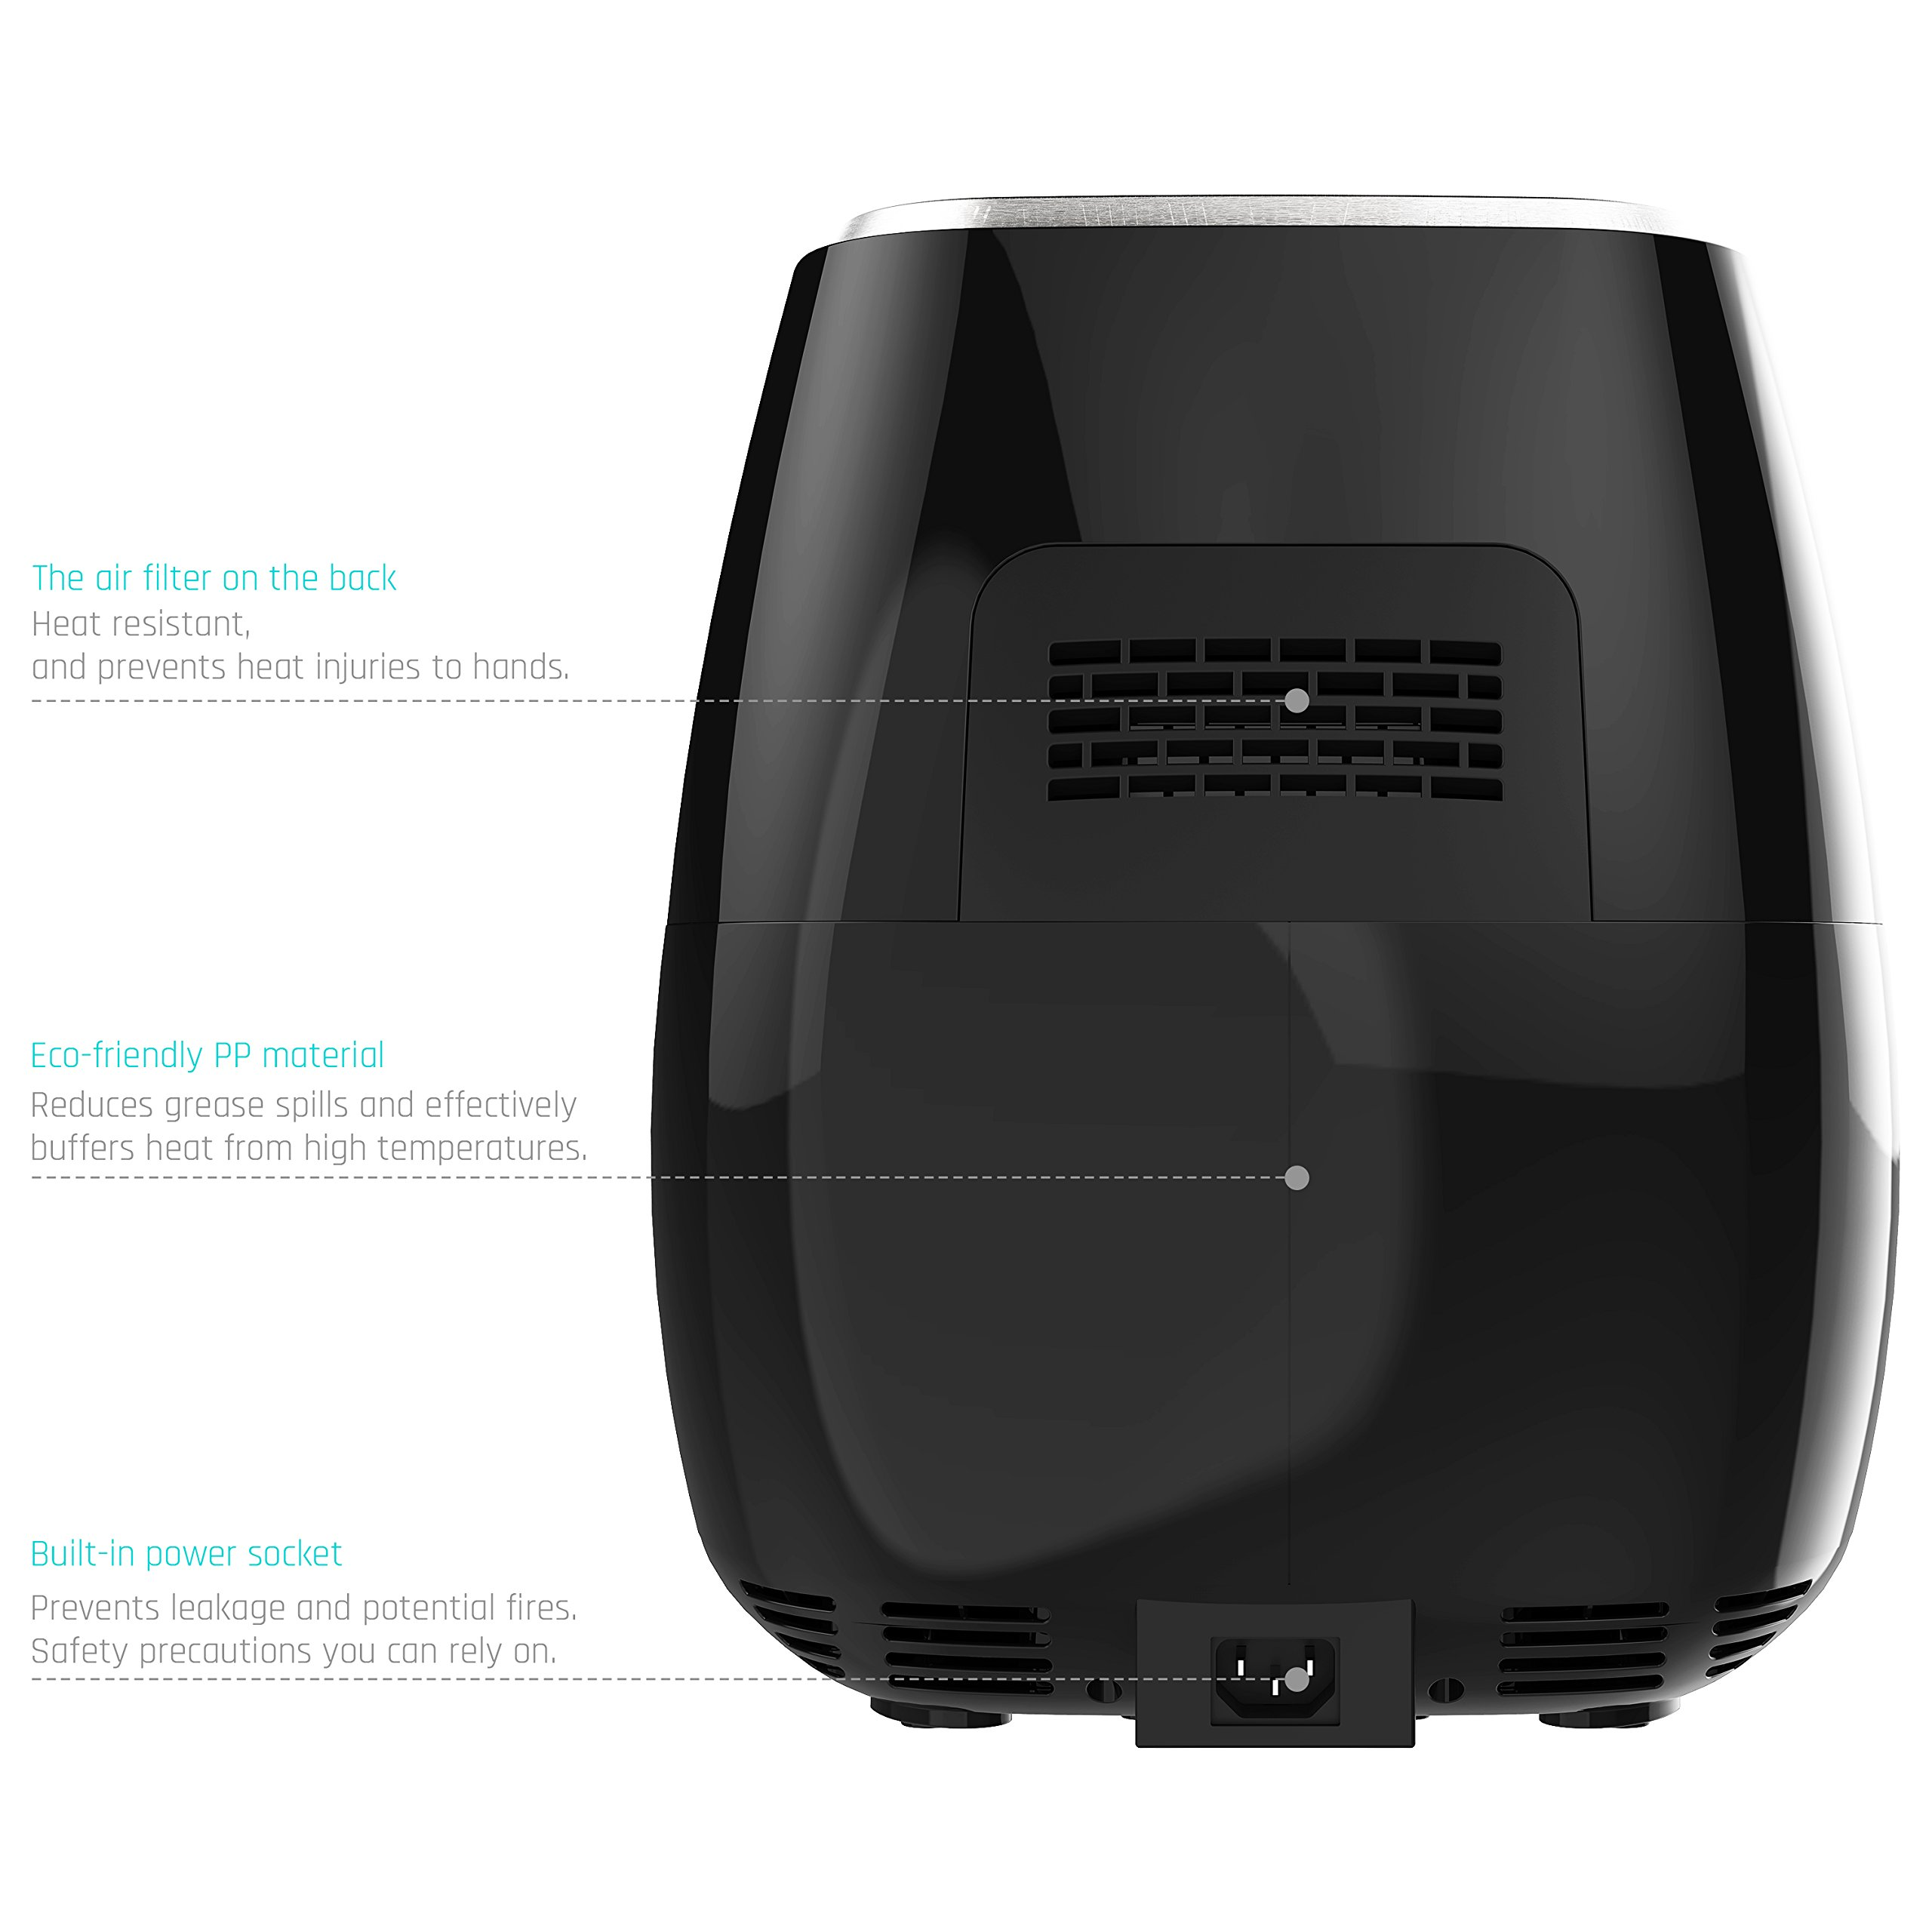 Air FryerLOVSHARE Touch Screen Control Oil Free Electric Air Fryer with Rapid Air Circulation Technology, Digital Display Smart Programs with Automatic and Manual Timer & Temperature Controls,3L by LOVSHARE (Image #7)